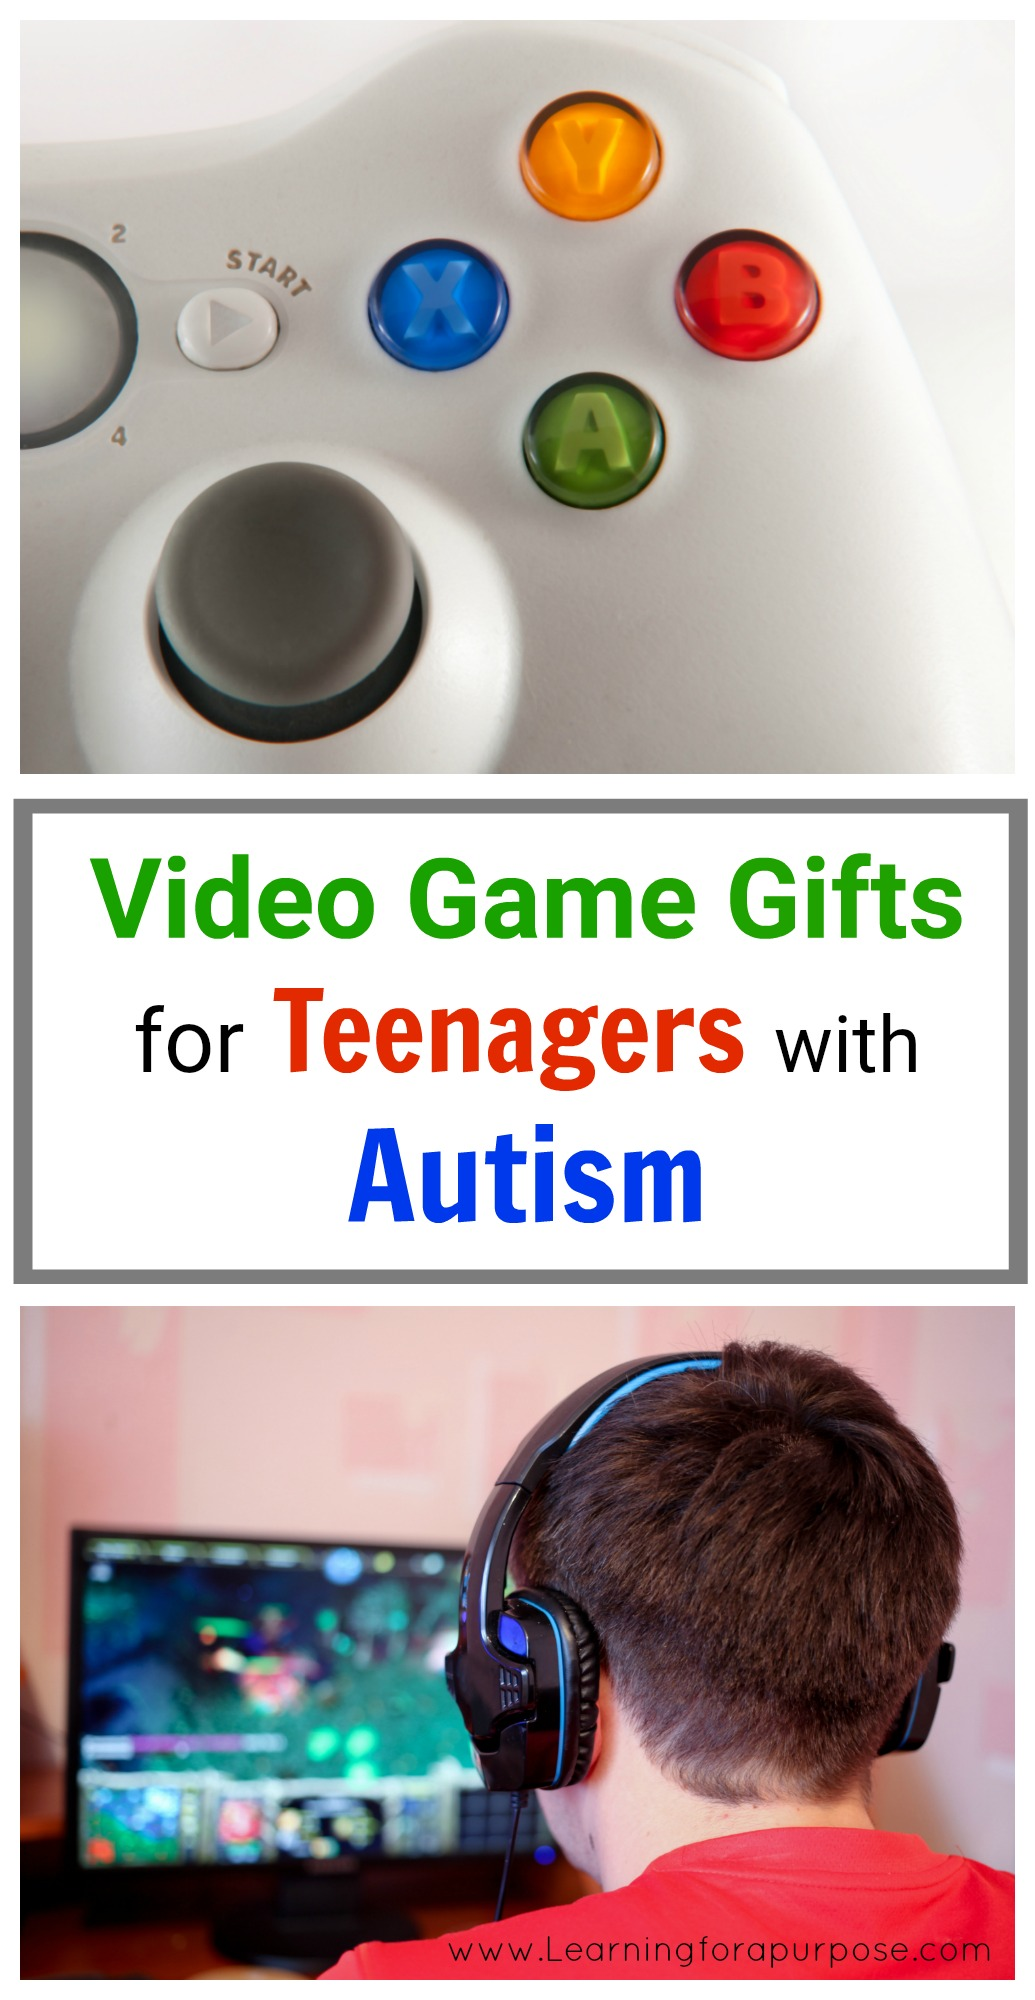 ideo Game Gifts for Teenagers with Autism